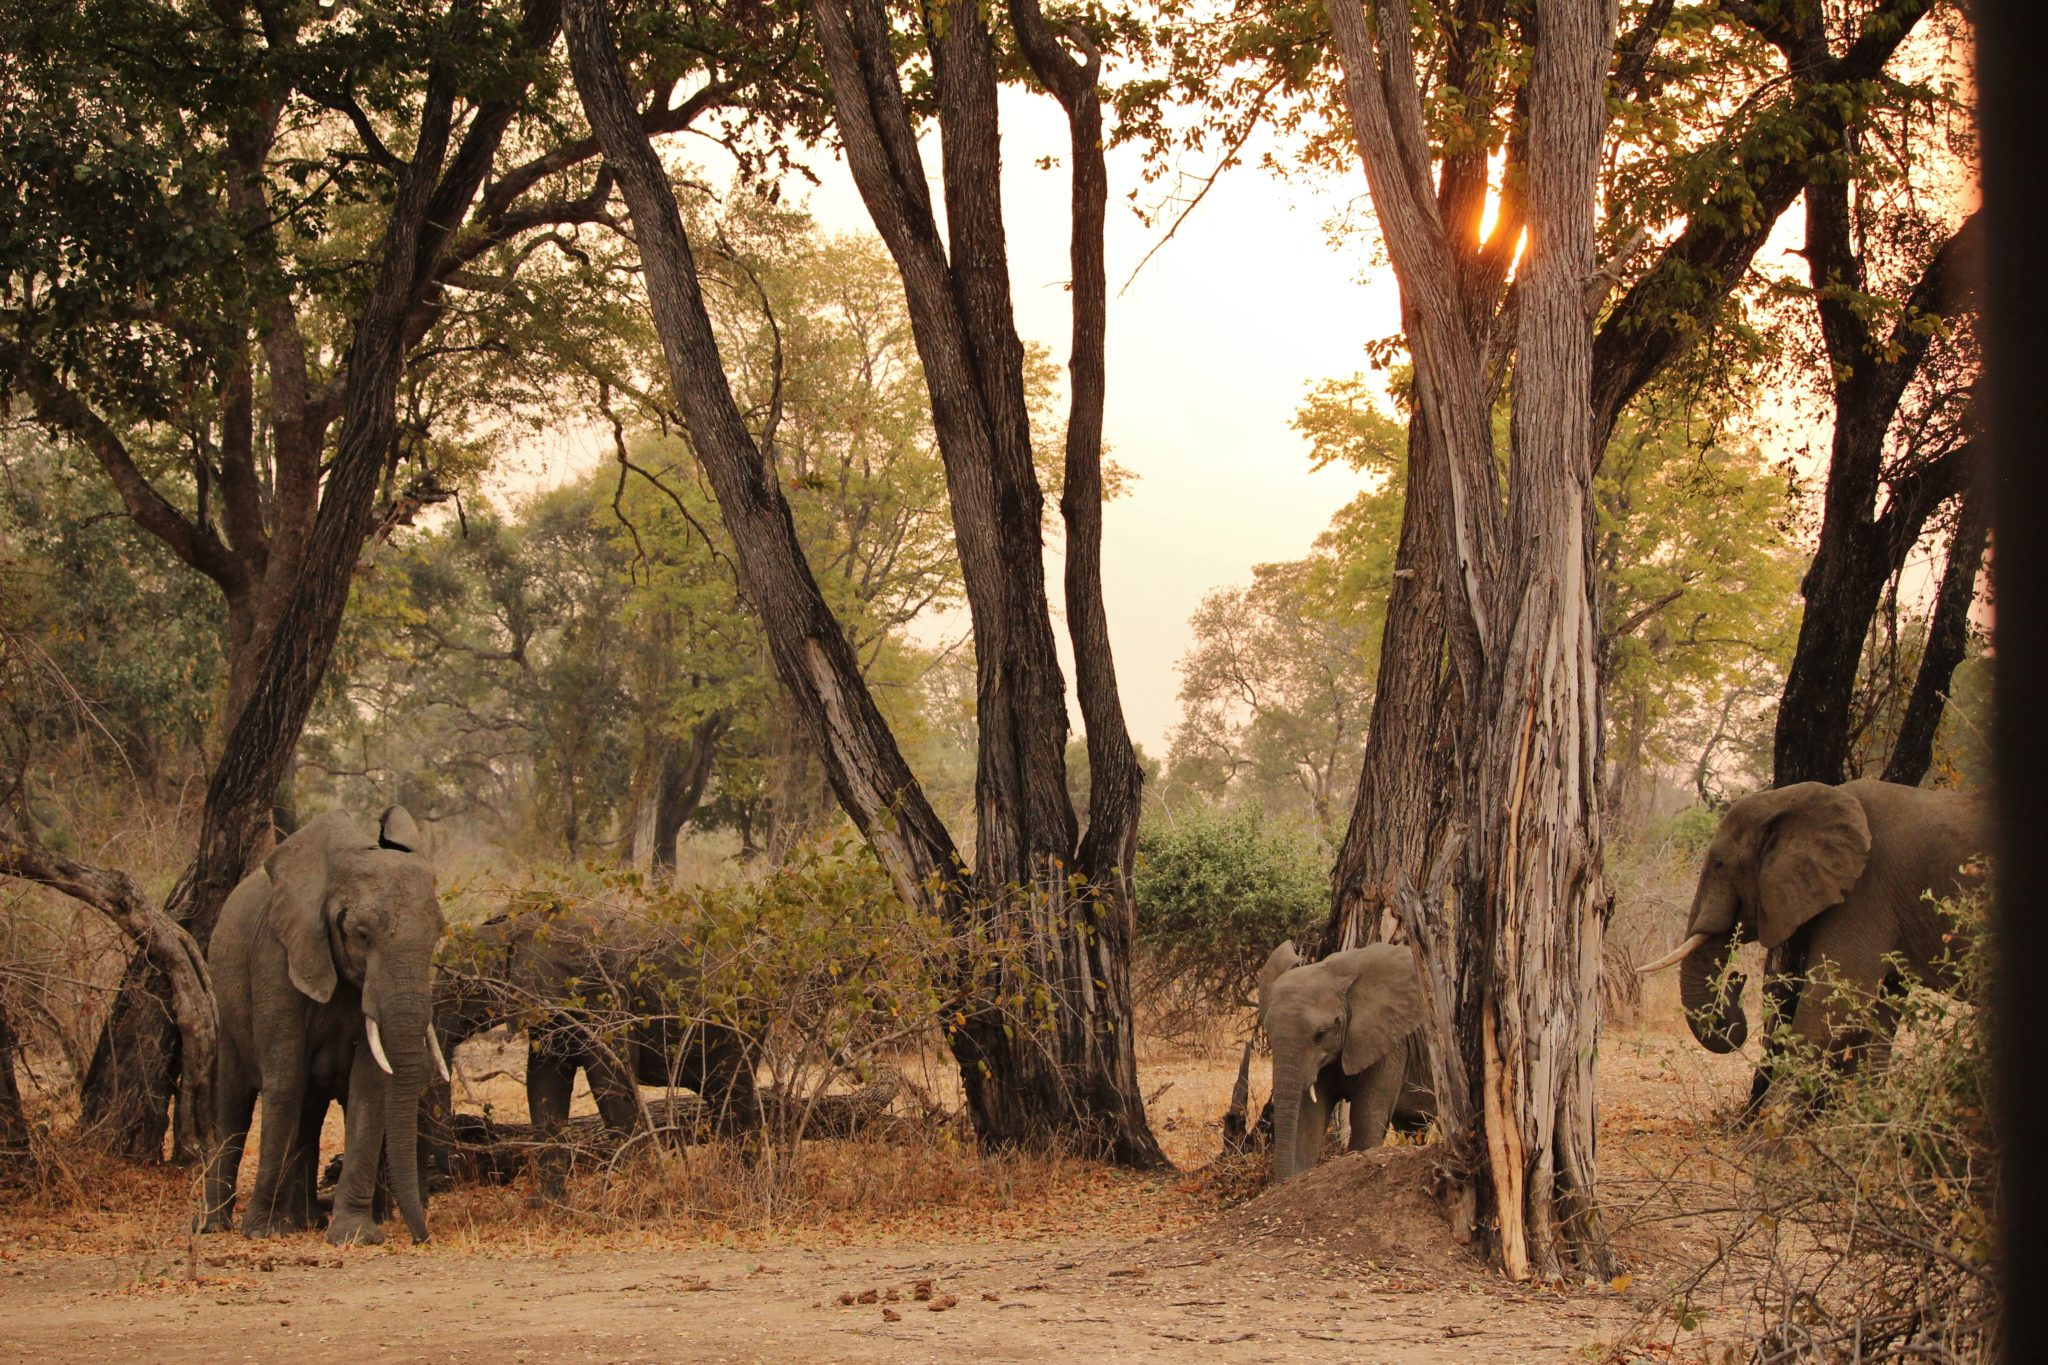 A herd of elephants in Zambia